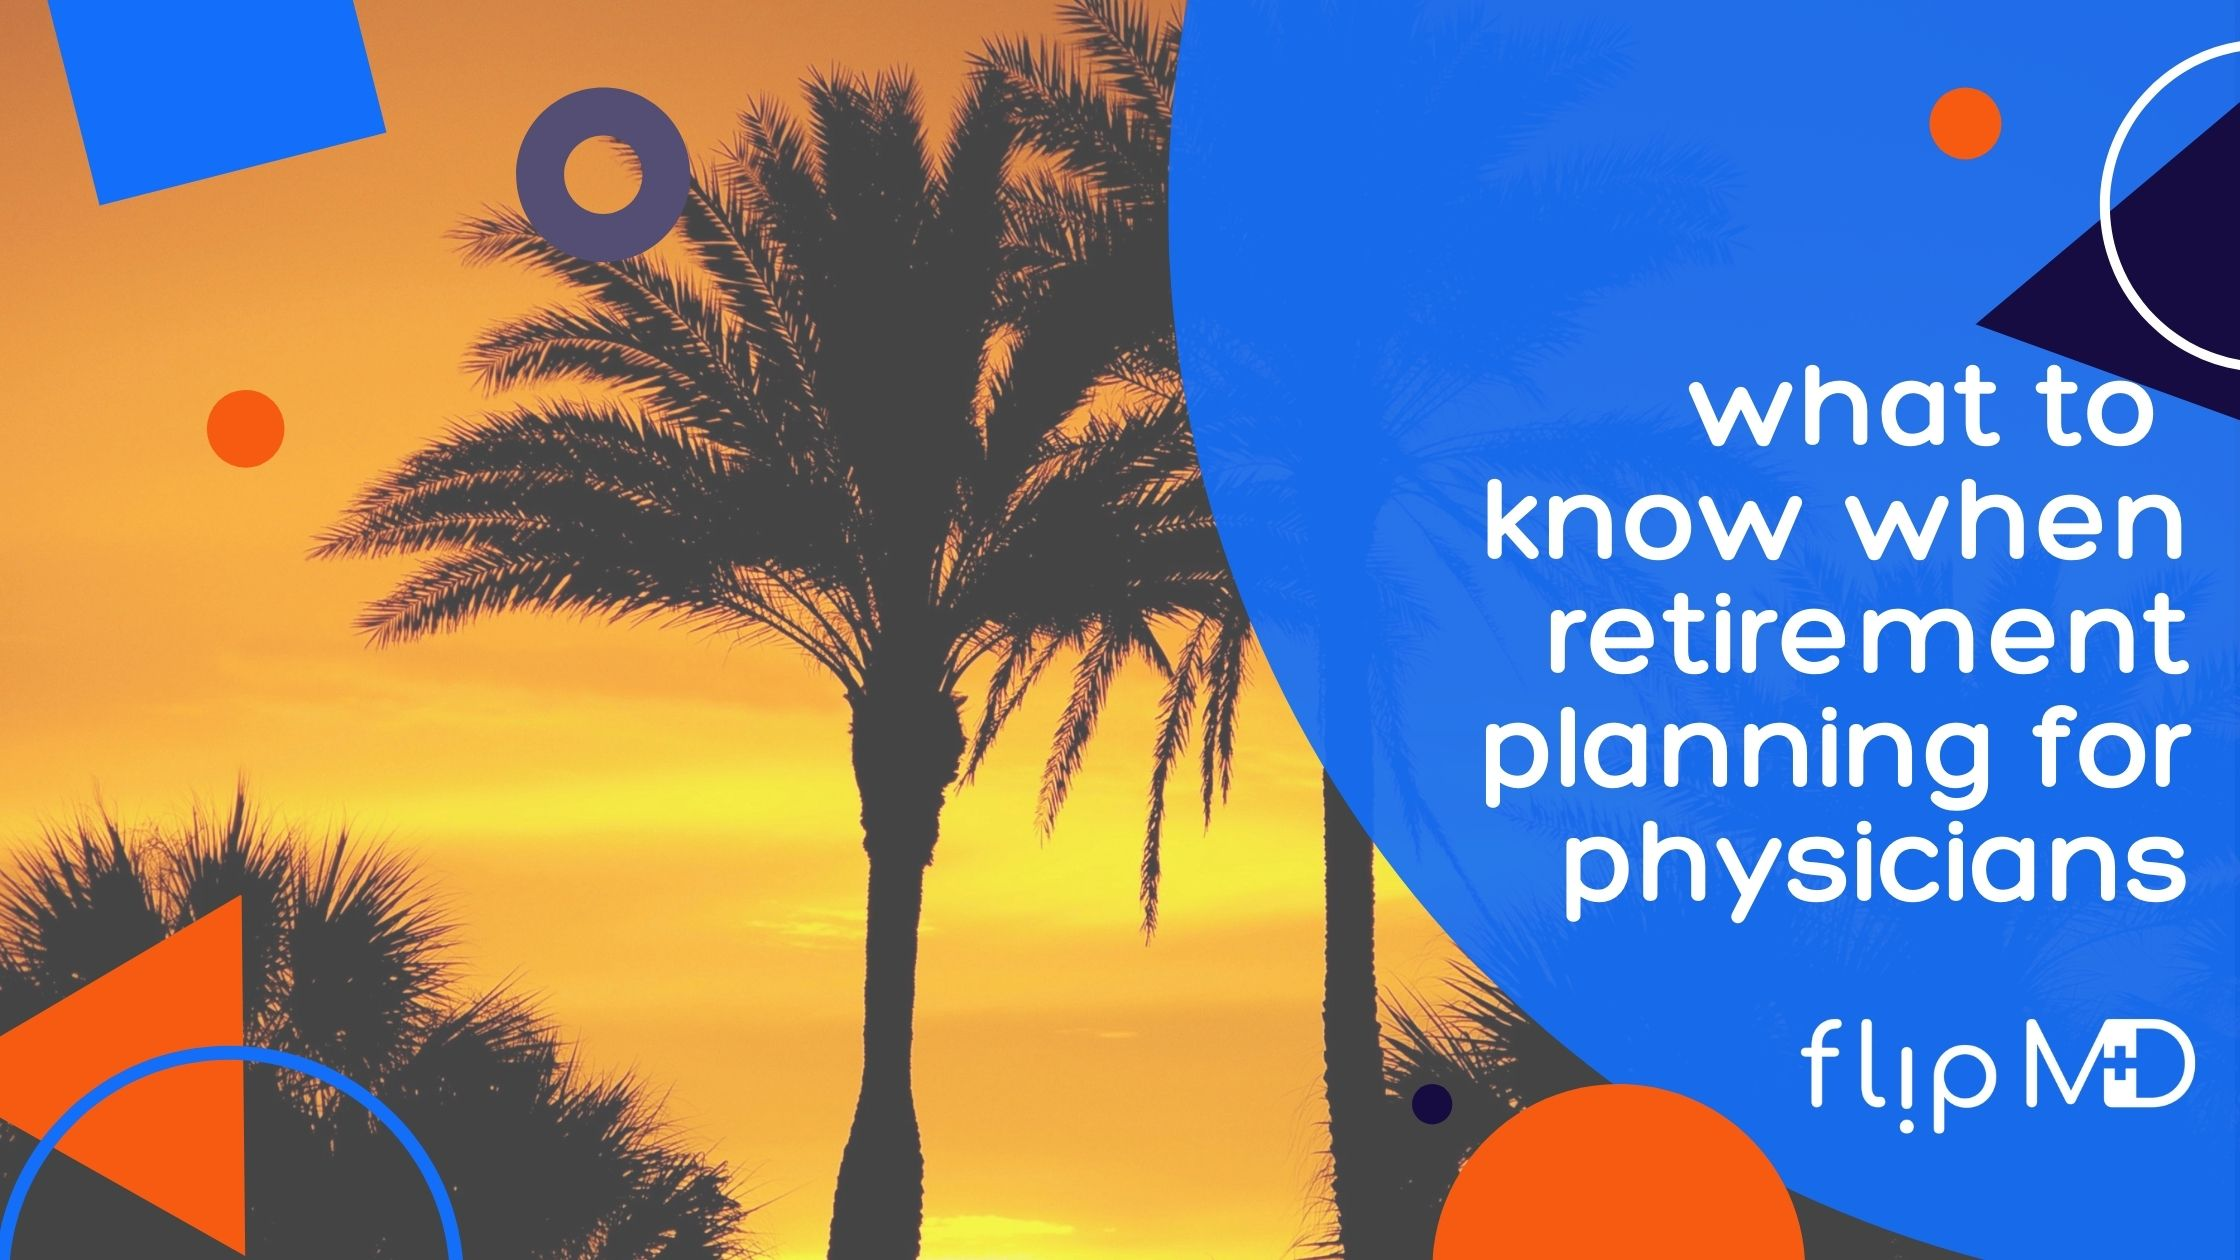 florida background for physicians planning for retirement